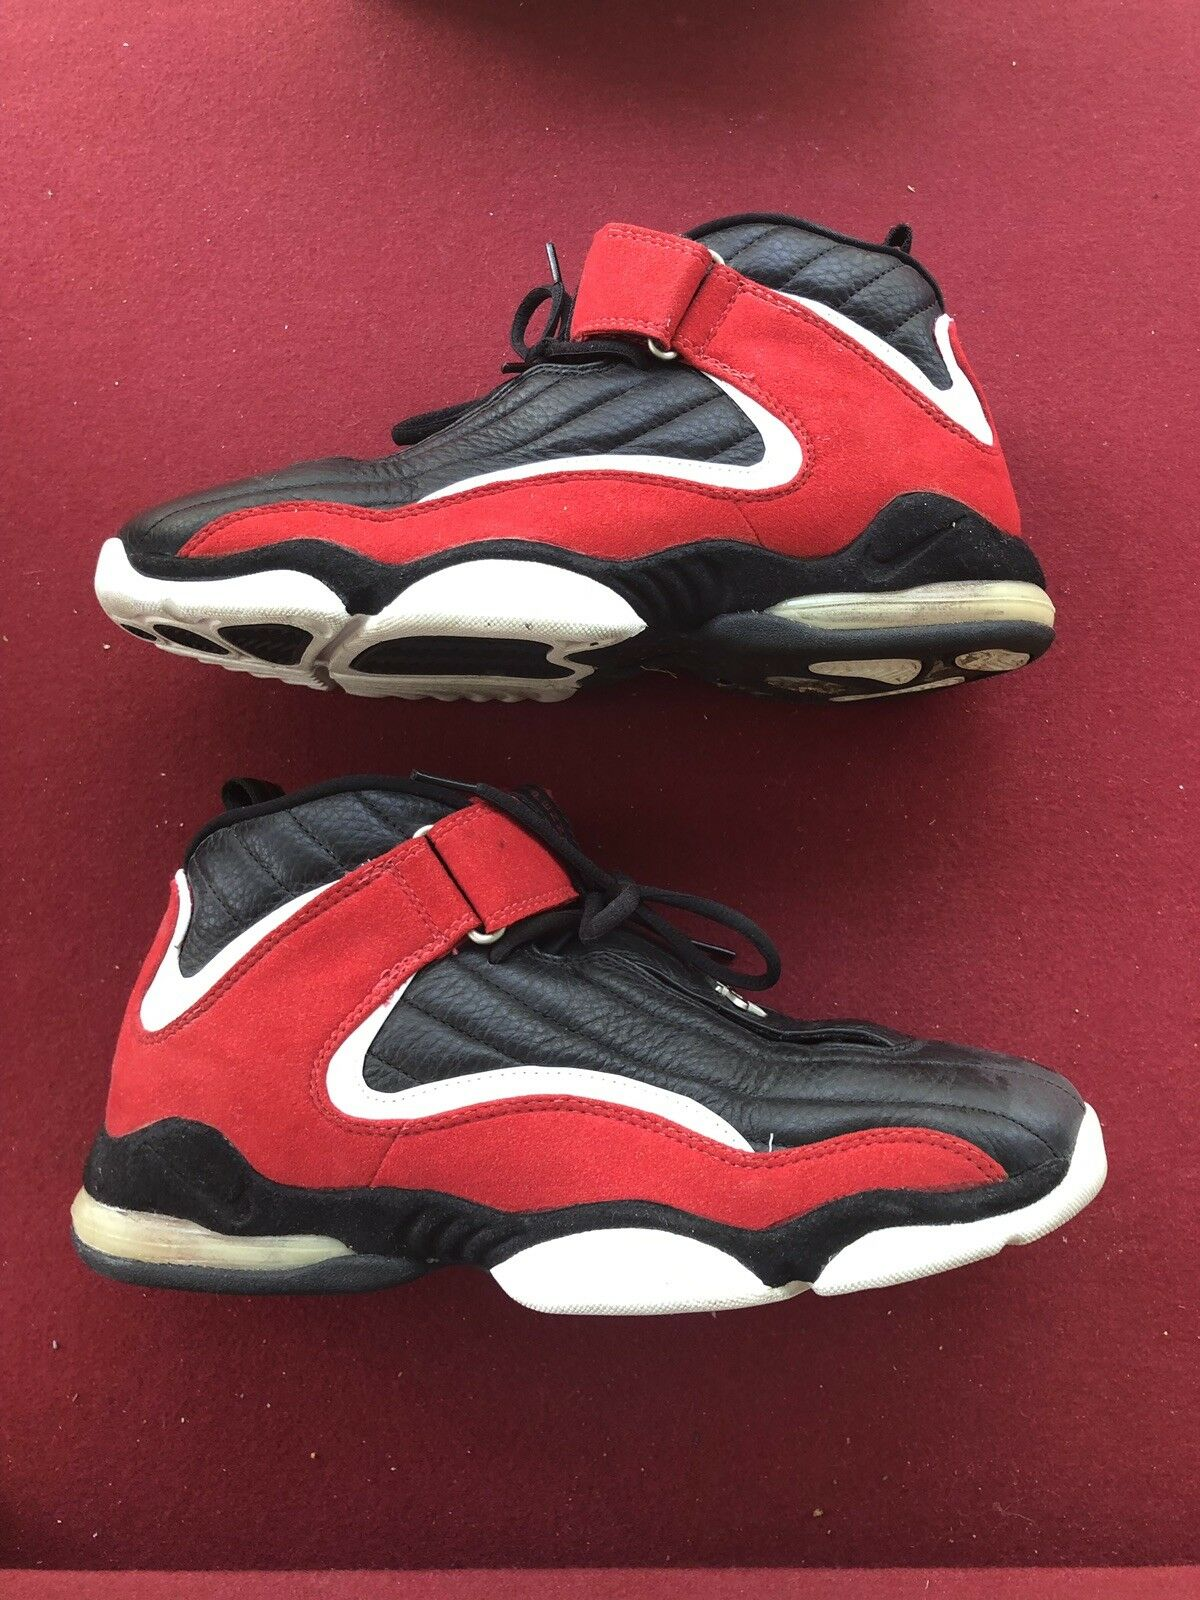 cheap for discount e6bd9 18453 Nike Air Max Penny IV 4 White Black True Red Red Red 630347-061 Size